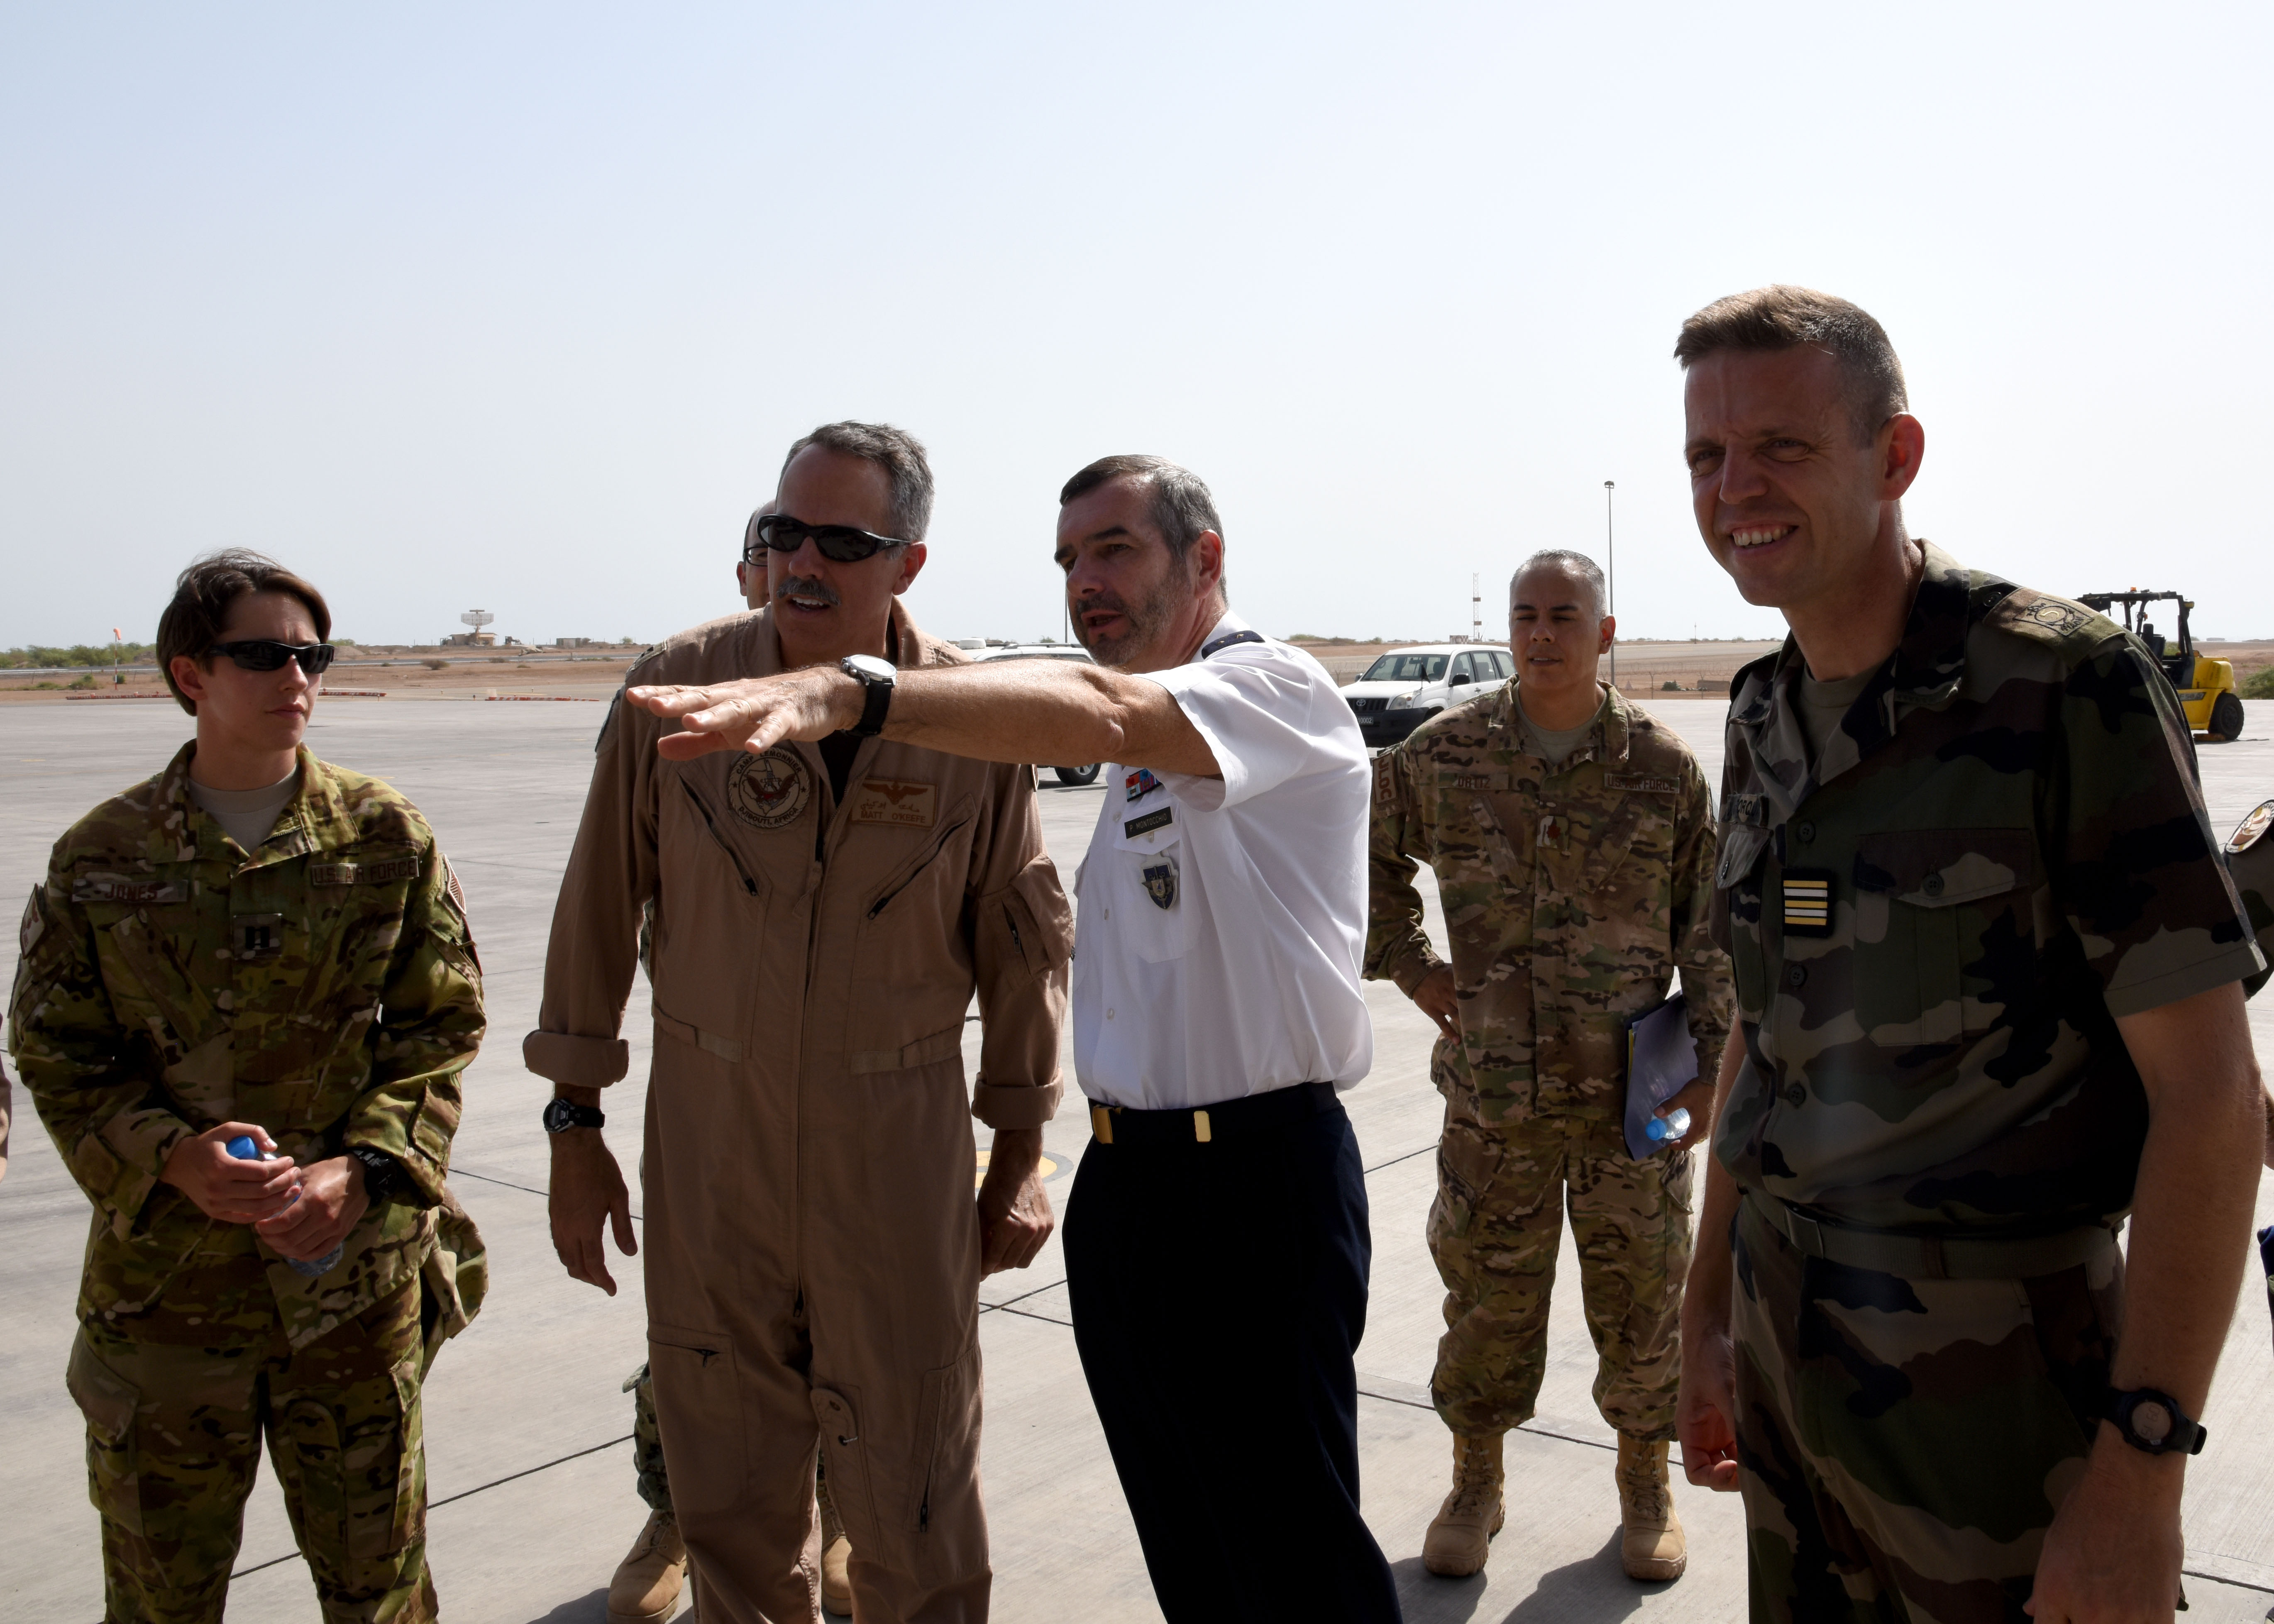 150823-N-DJ346-014 CAMP LEMONNIER, Djibouti (August 23, 2015) General Mon Tocchio, Commanding Officer, French Forces Djibouti and U.S. Navy Captain Matthew O'Keefe, Commanding Officer, Camp Lemonnier, Djibouti, discuss loading operations. French and U.S. service members prepare to transport two French Puma Helicopters and associated Passengers & Cargo to N'Djamena aboard a U.S. Air Force C-17 Globemaster. The helicopters support French operations at the intersecting borders of Libya, Chad and Niger deterring weapons and drug smuggling, and jihadist regularly crossing between nations. This is the first time France has received support from U.S. Forces in Djibouti for any mission outside of East Africa. (U.S. Navy photo by Chief Mass Communication Specialist Donald W. Randall/Released)